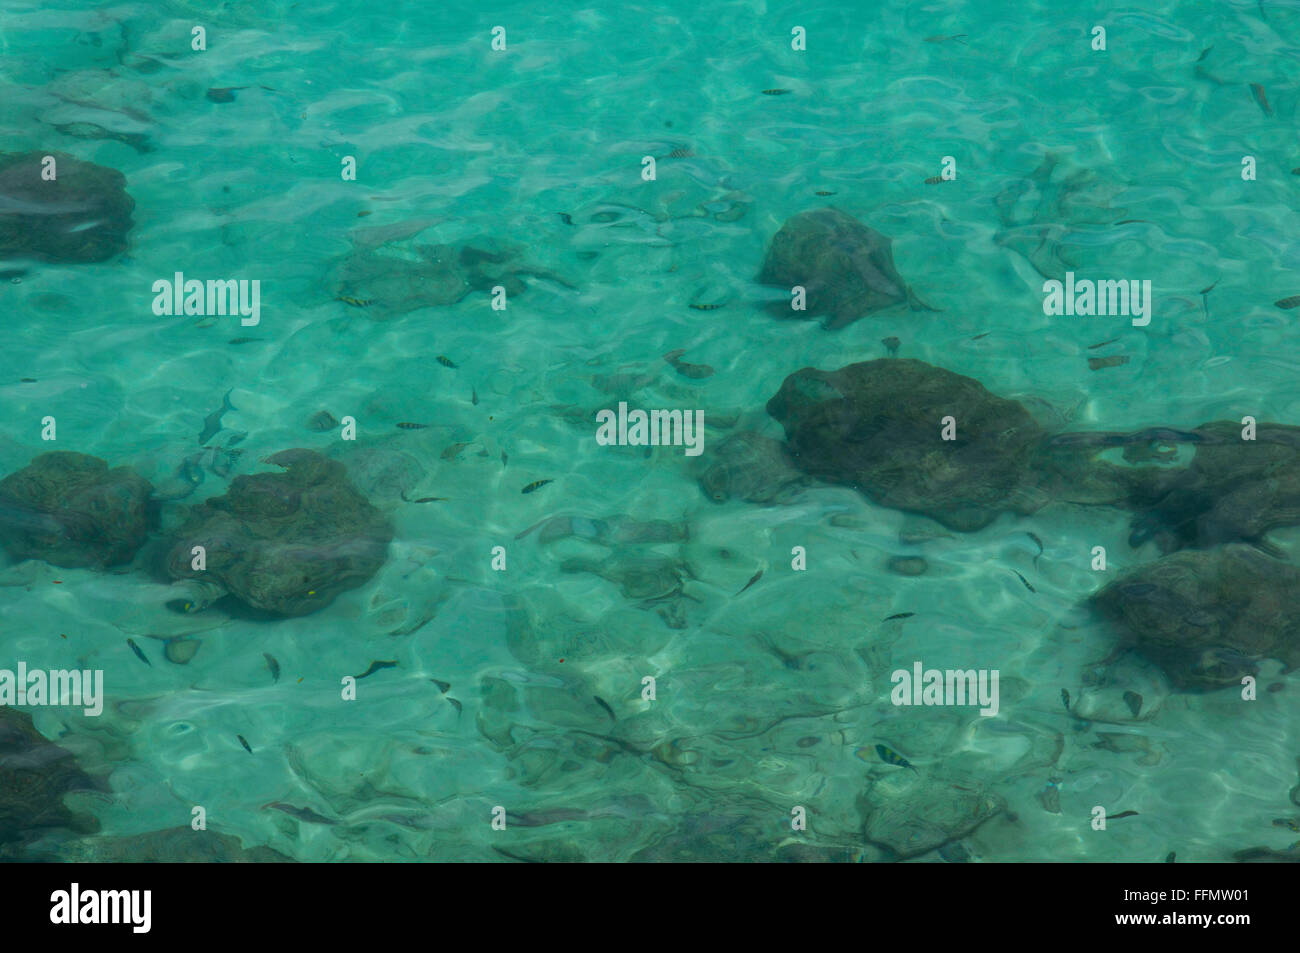 looking down on to clean clear seas showing fish and corals. Stock Photo